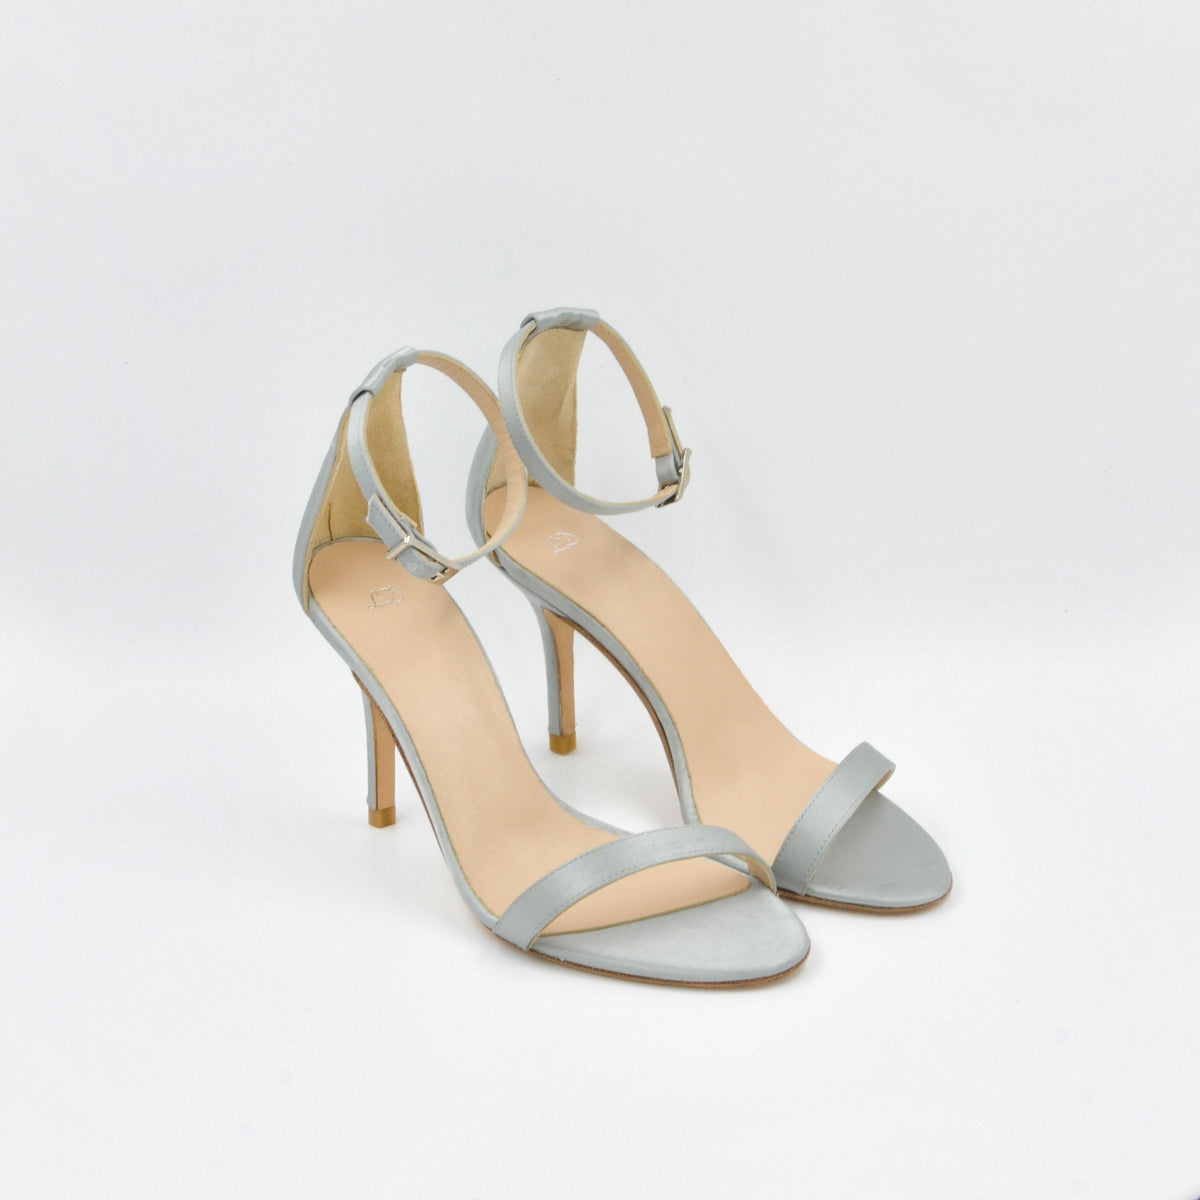 Lola Domecq Alejandra In Silver Hand made satin sandals for marriage